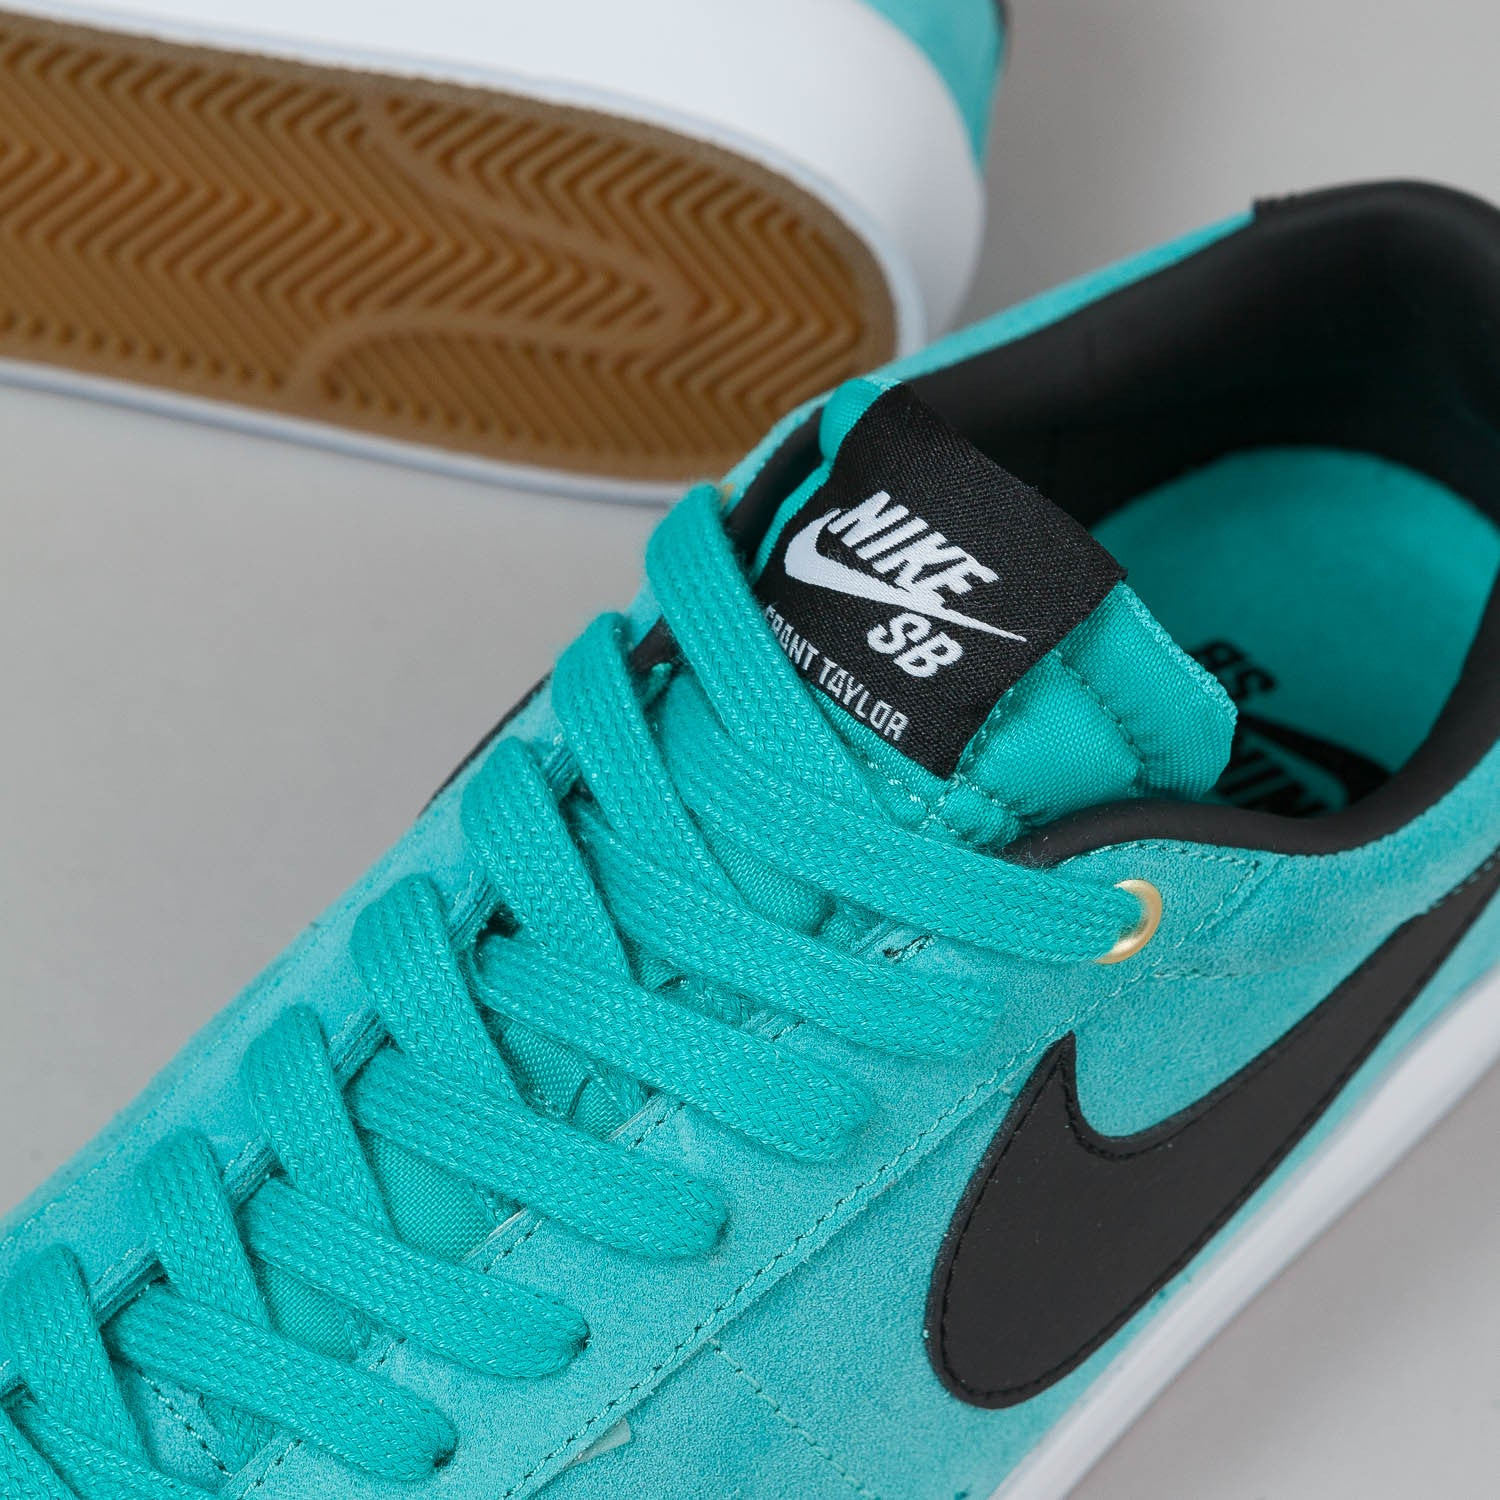 Nike SB Blazer Low GT Shoes - Light Retro / Black / White